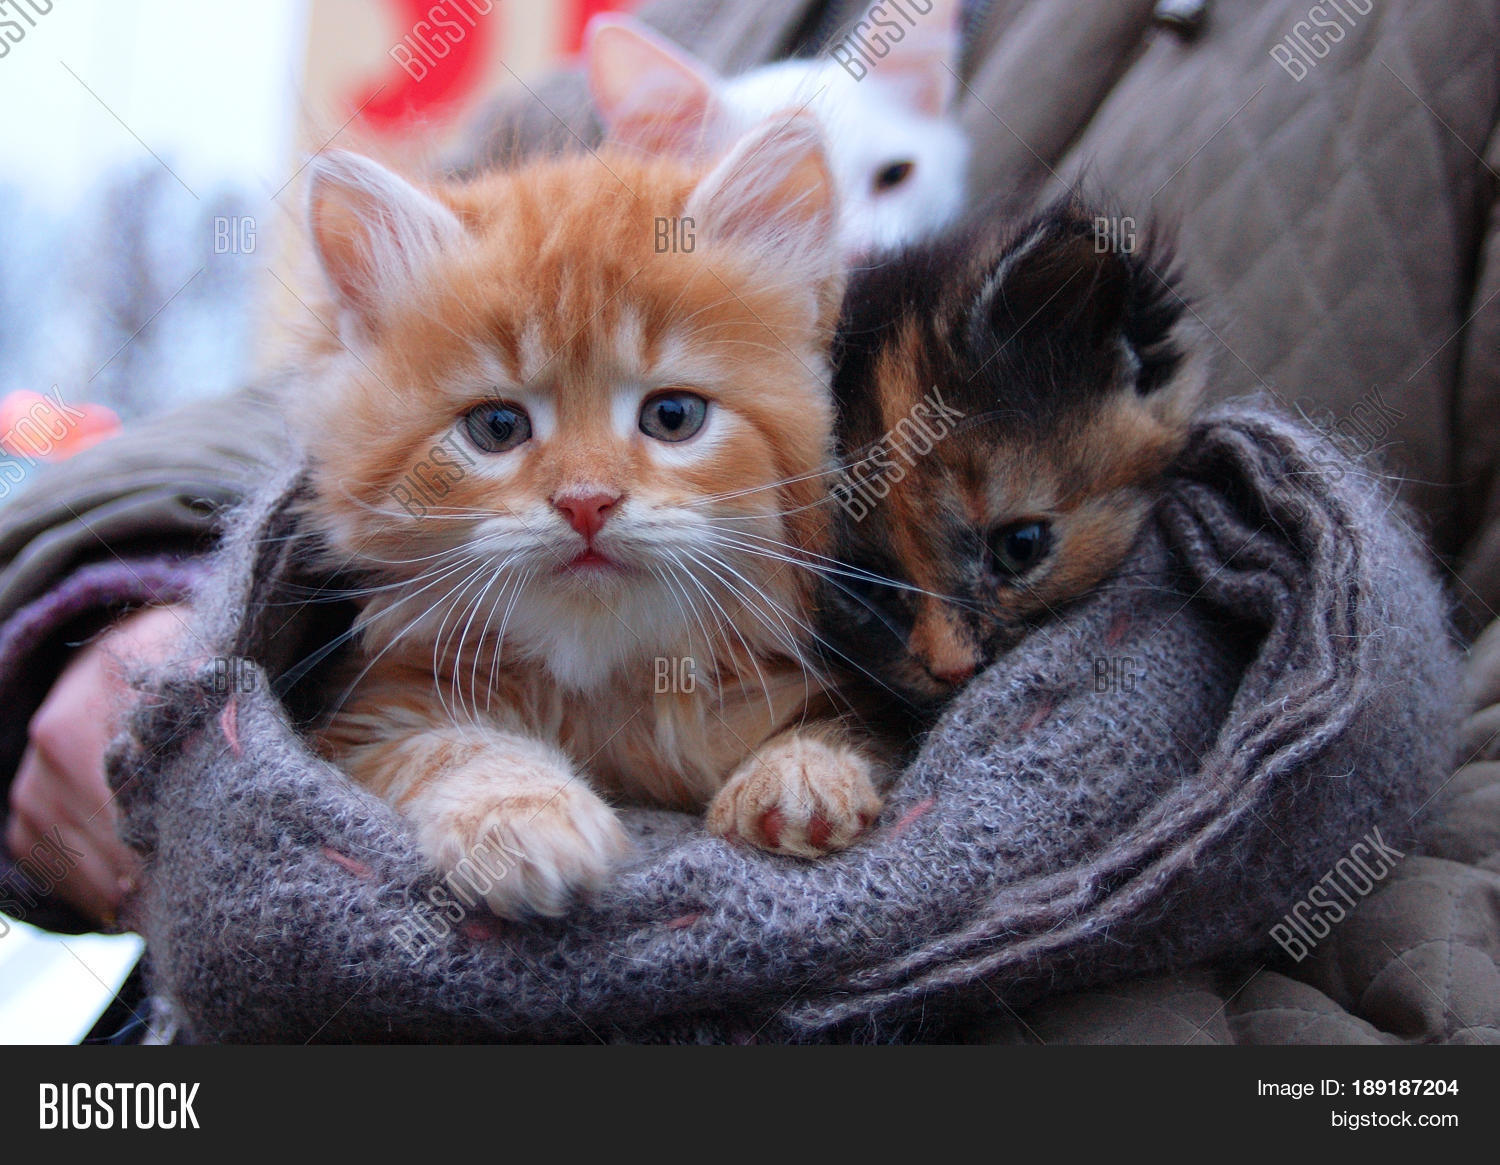 Kitten Sale Hand made Scarf Outdoor Image &